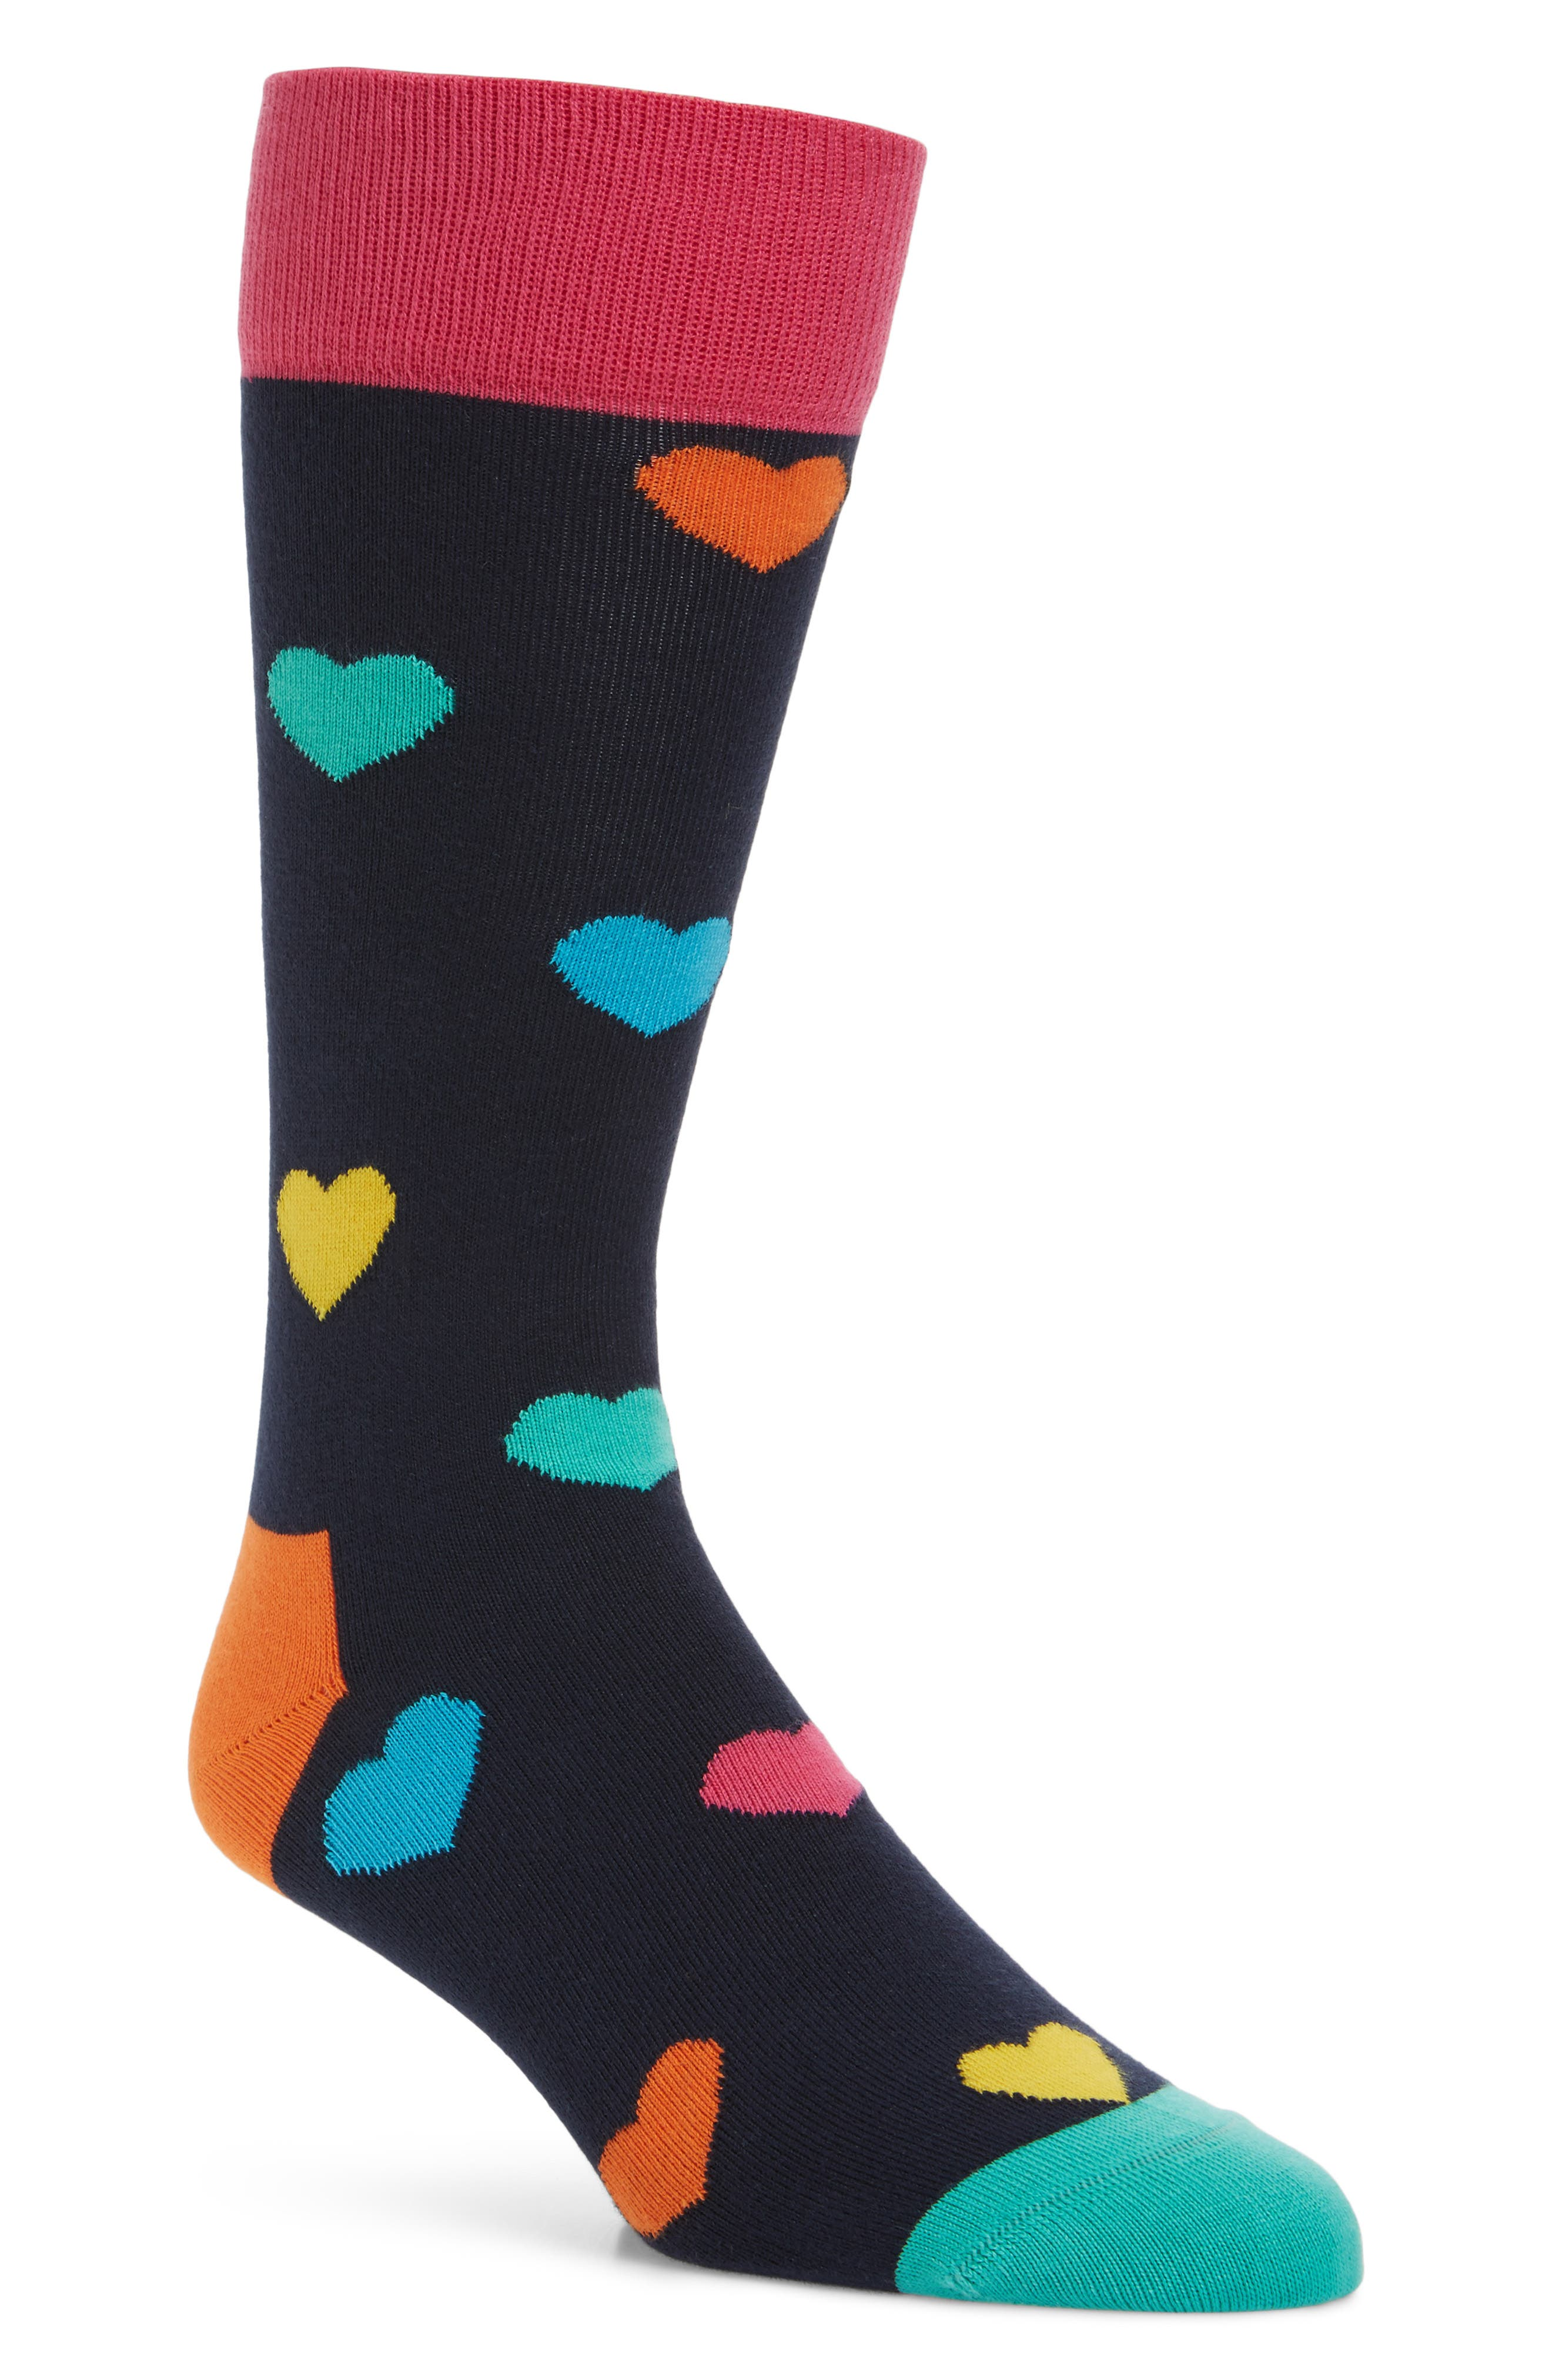 Heart Pattern Socks,                             Main thumbnail 1, color,                             470